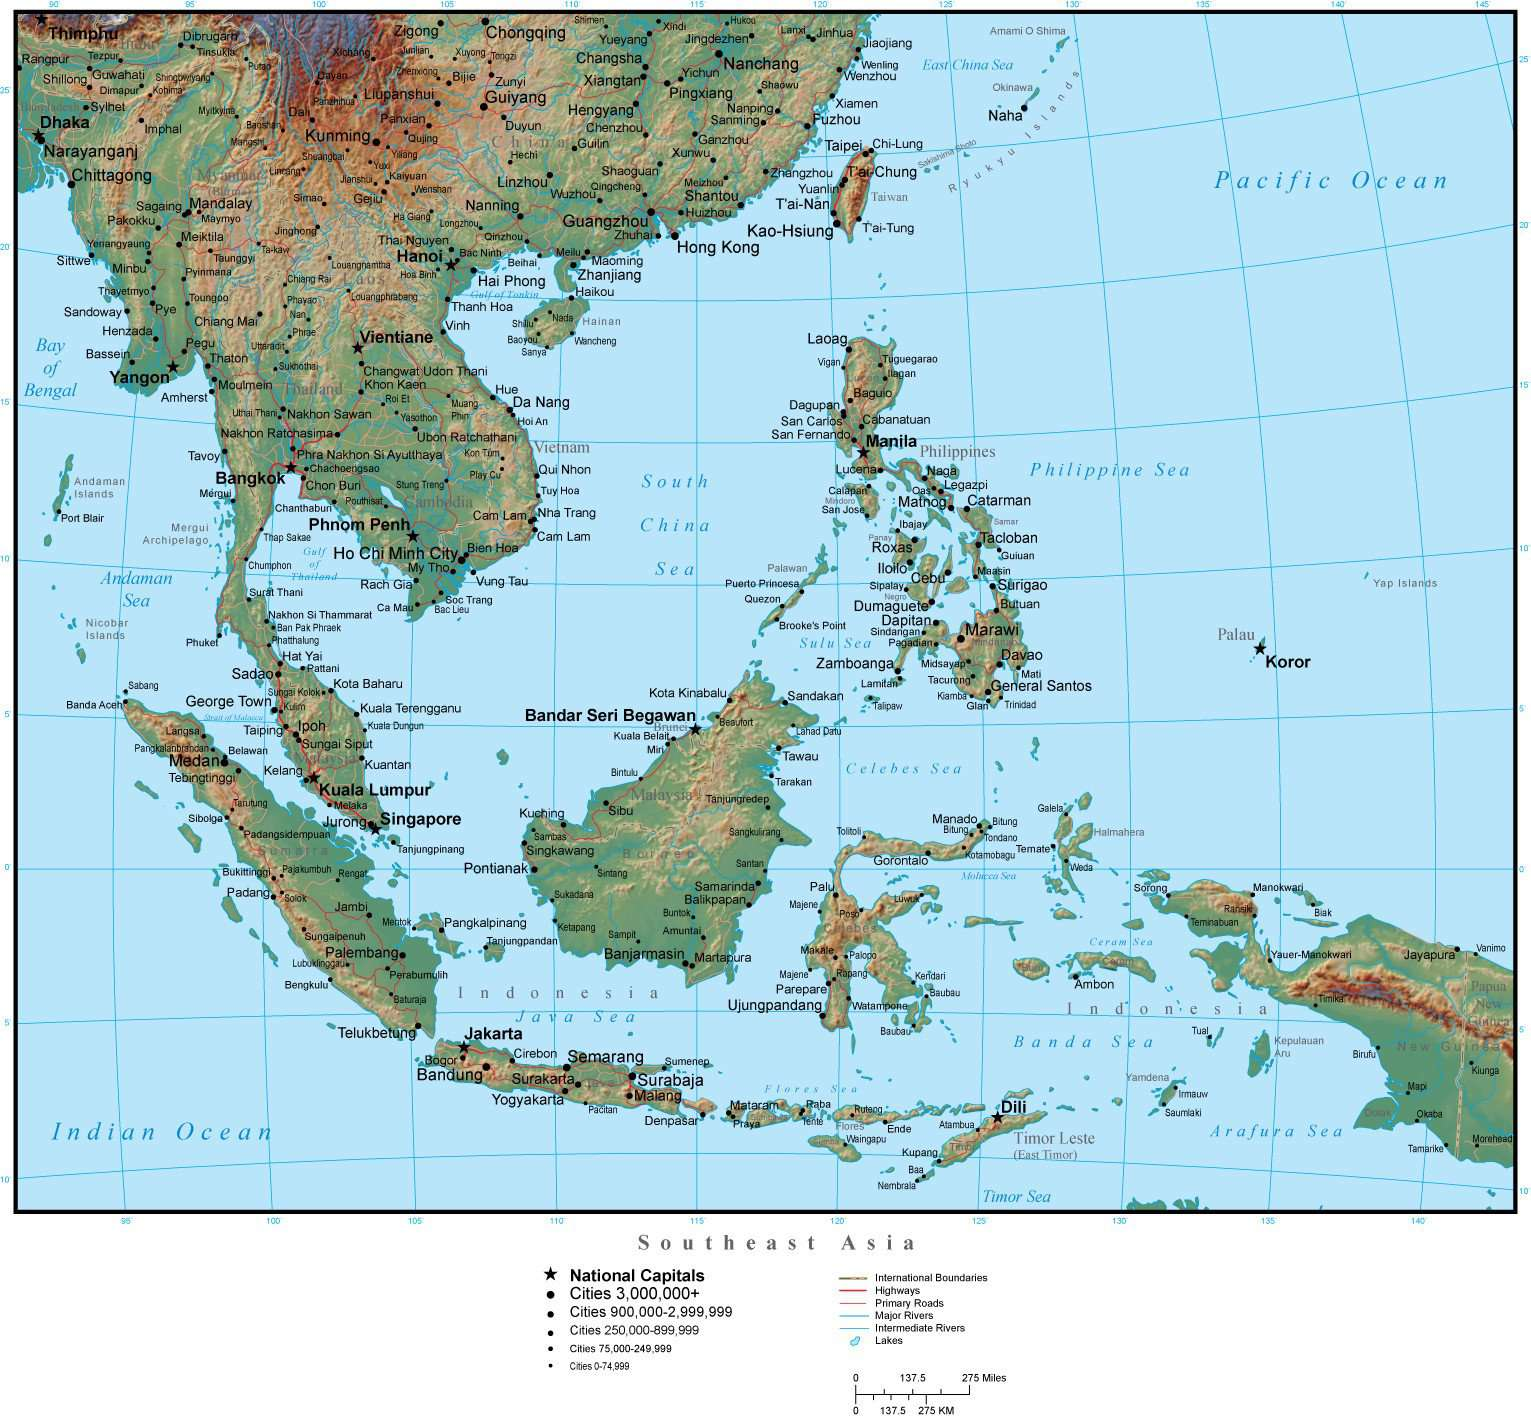 Southeast Asia Map Plus Terrain with Countries, Capitals, Cities, Roads, on show map portugal, show map morocco, show map of syria, show map malaysia, show map italy, show map cambodia, show map singapore, show map united states, show map of russia, show map europe, show map israel, show map of africa, show map usa states, show map phoenix, show map egypt, show map dubai, show map mexico, show map ural mountains, show map chile, show map nepal,